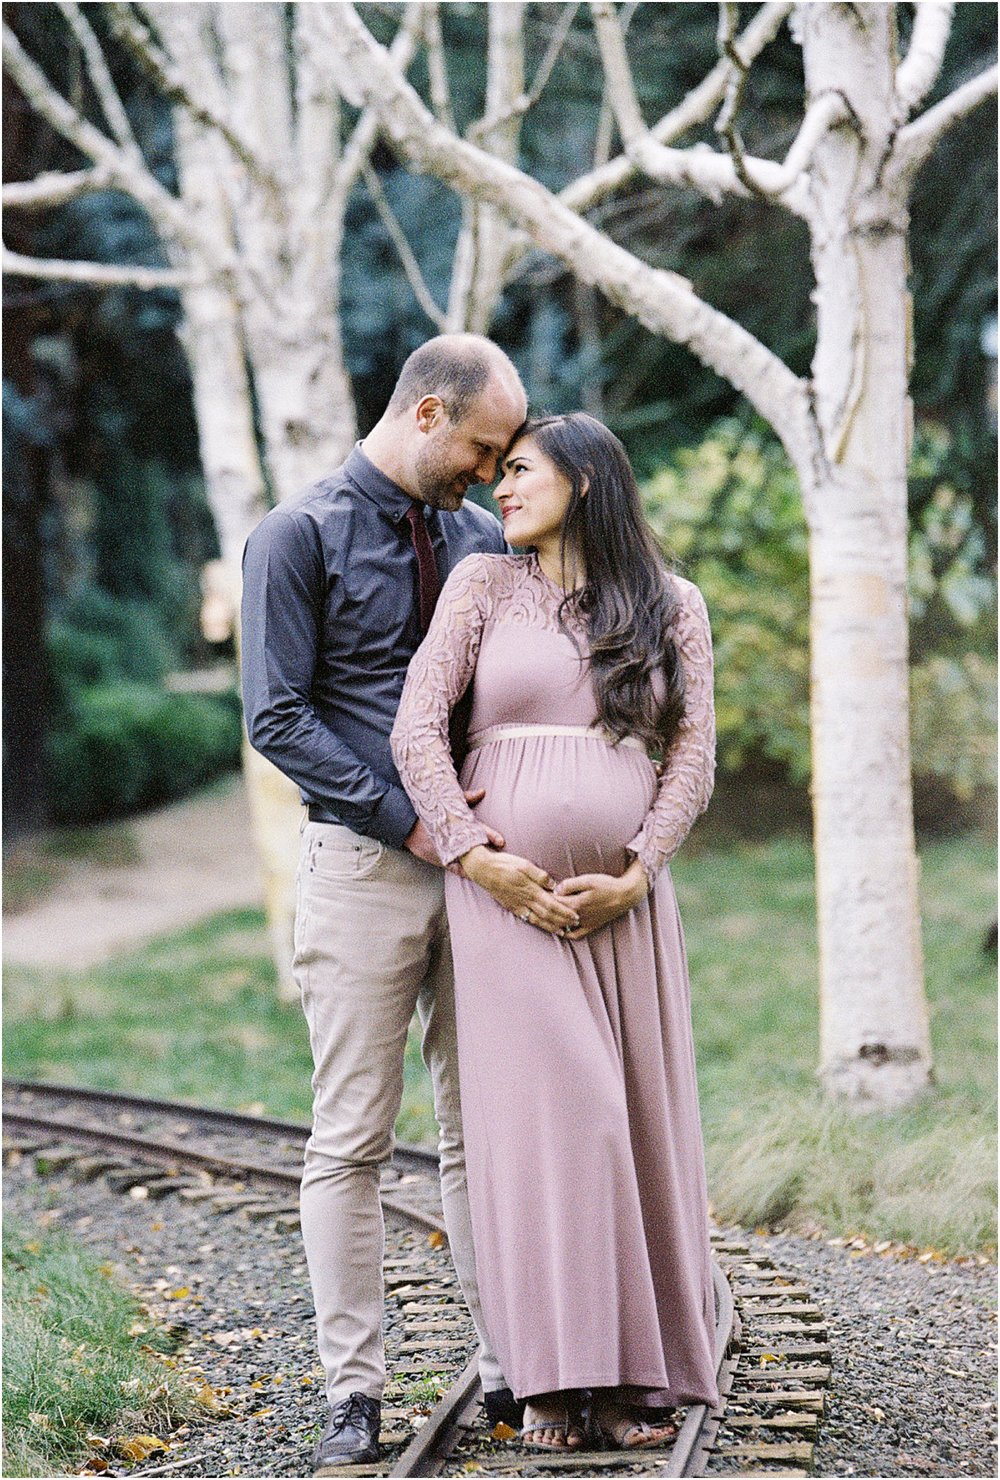 Maternity photos.  Briana Calderon Photography based in Tacoma, WA_0609.jpg